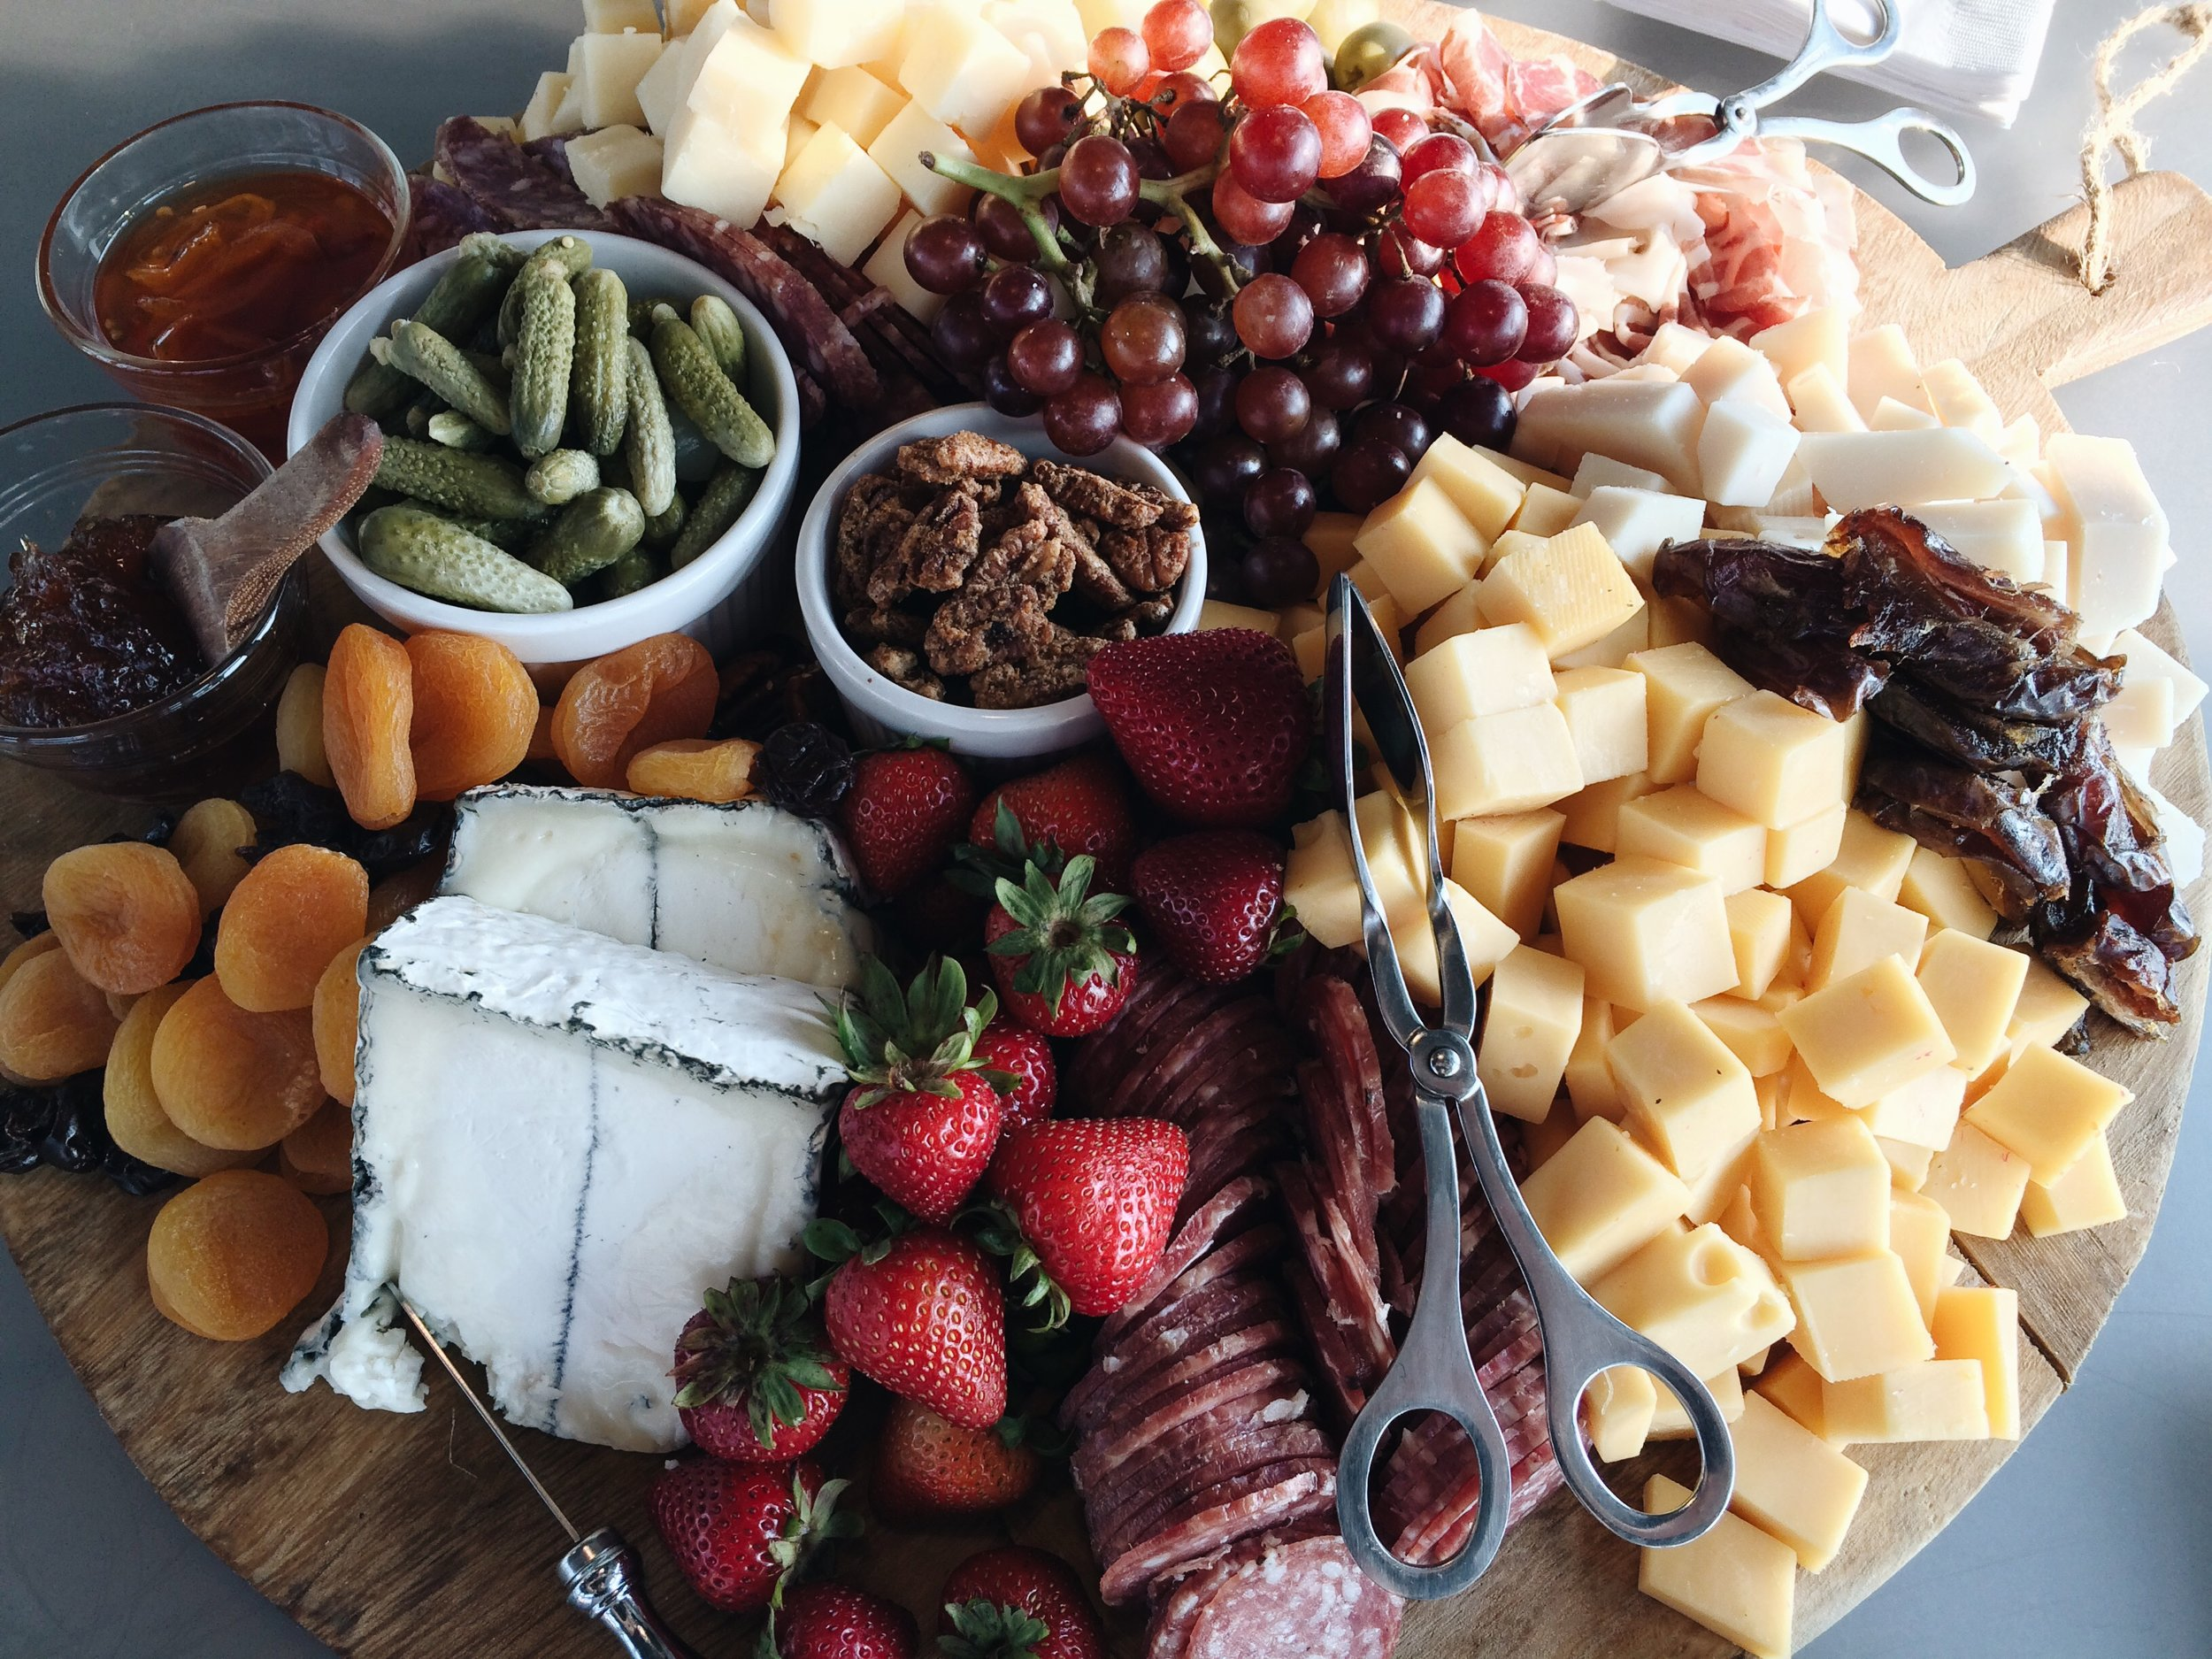 Homespun ATL Boutique Chef Services and Catering | Meat and Cheese Board